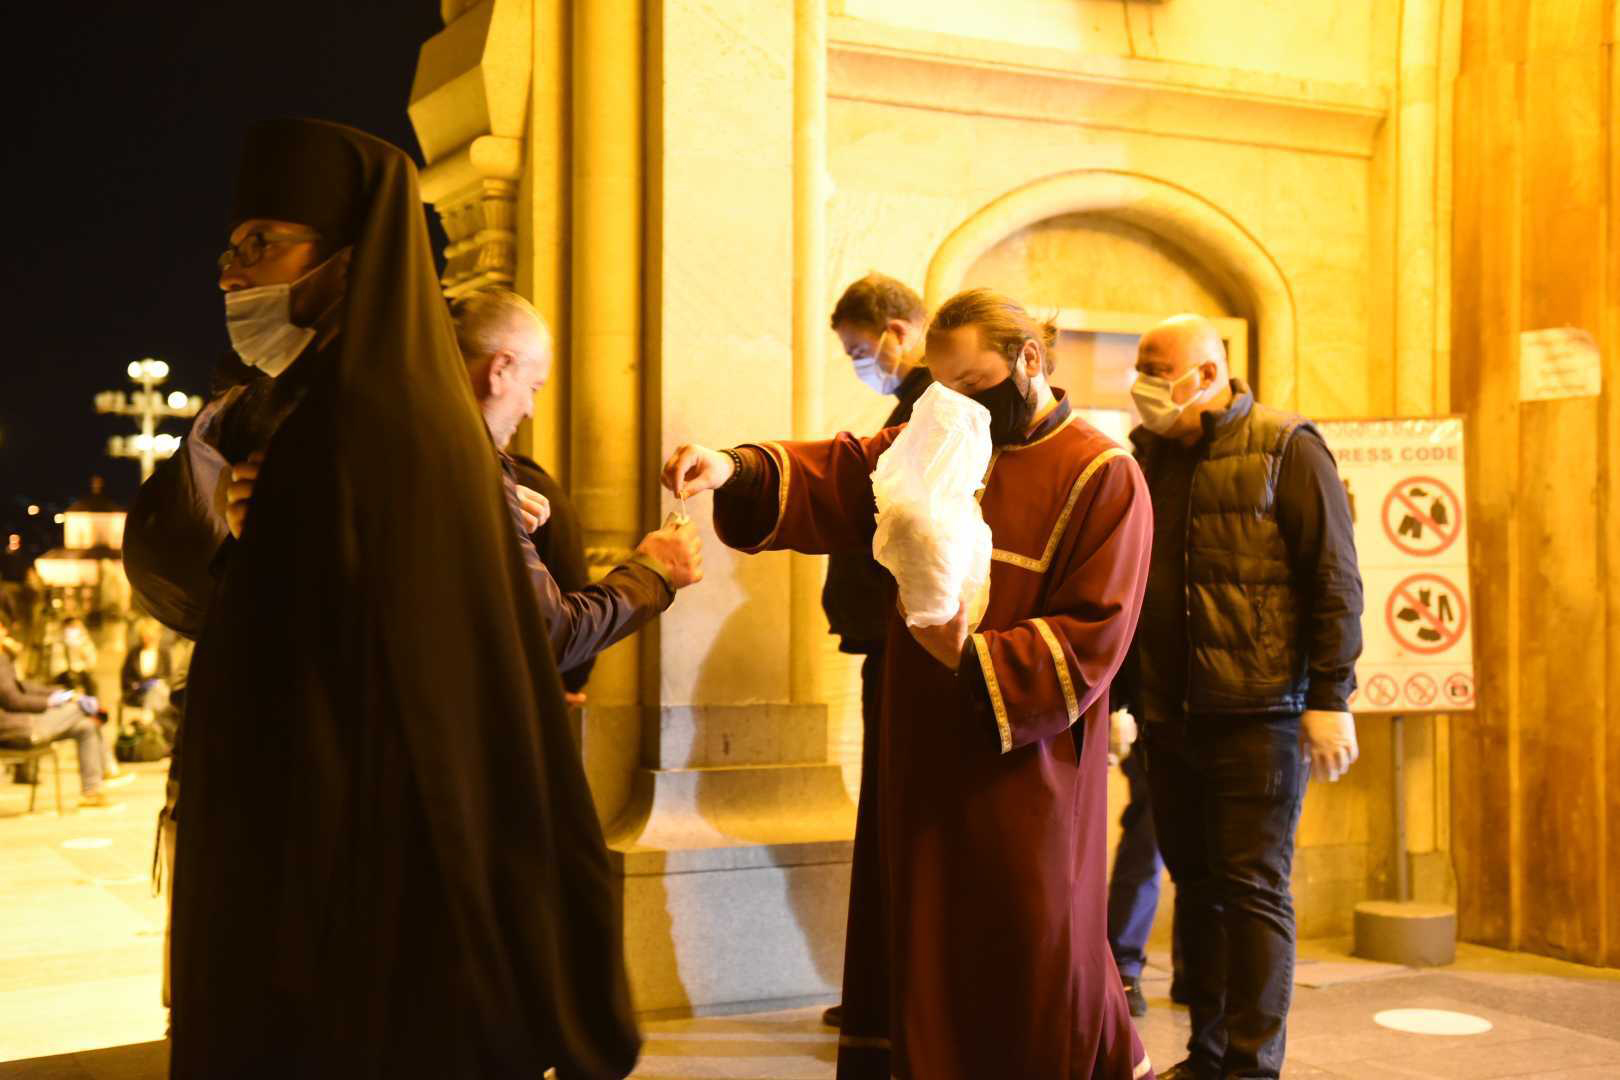 Clergy handed out facemasks to people entering the Church. Photo: Mariam Nikuradze/OC Media.